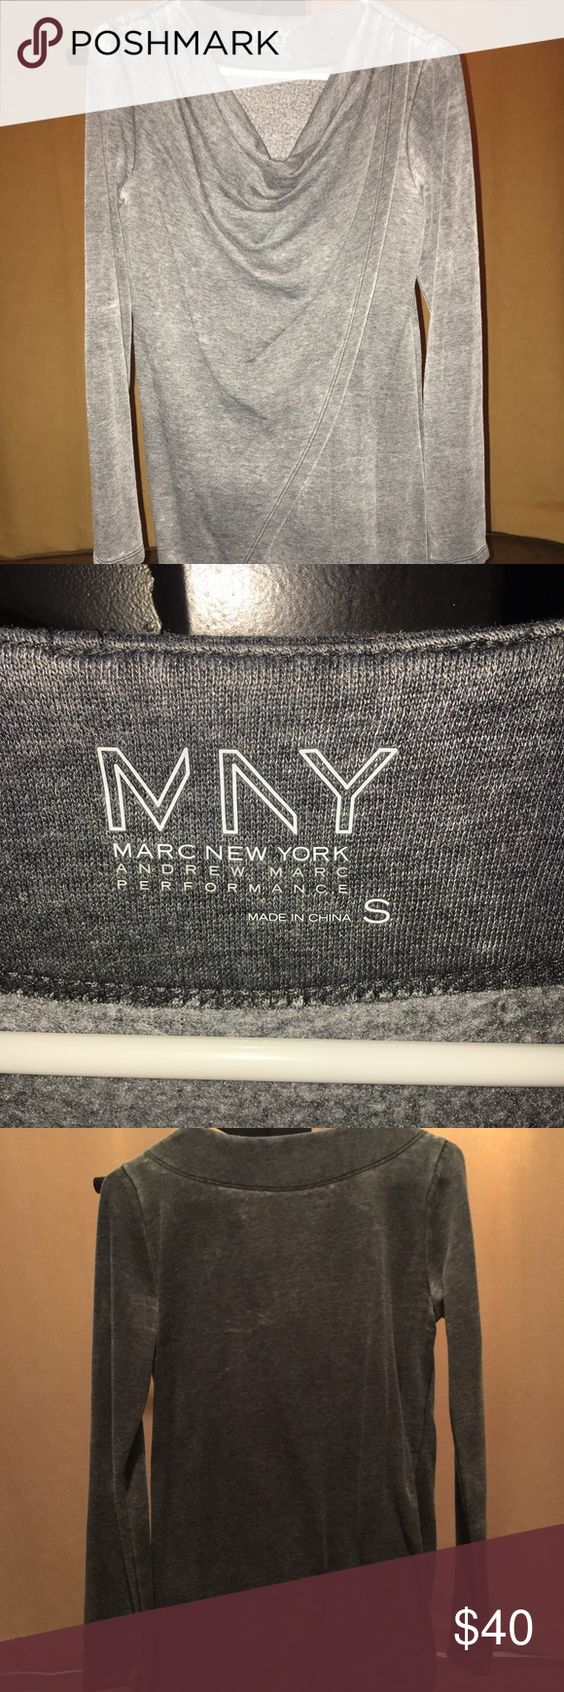 Marc New York pull over Gray Marc New York pull over. Very very soft. And a nicer pull over. I like it I just don't wear it enough... Very good condition. Size small. Kinda opens in the front. Dresser pull over Marc Jacobs Tops Sweatshirts & Hoodies